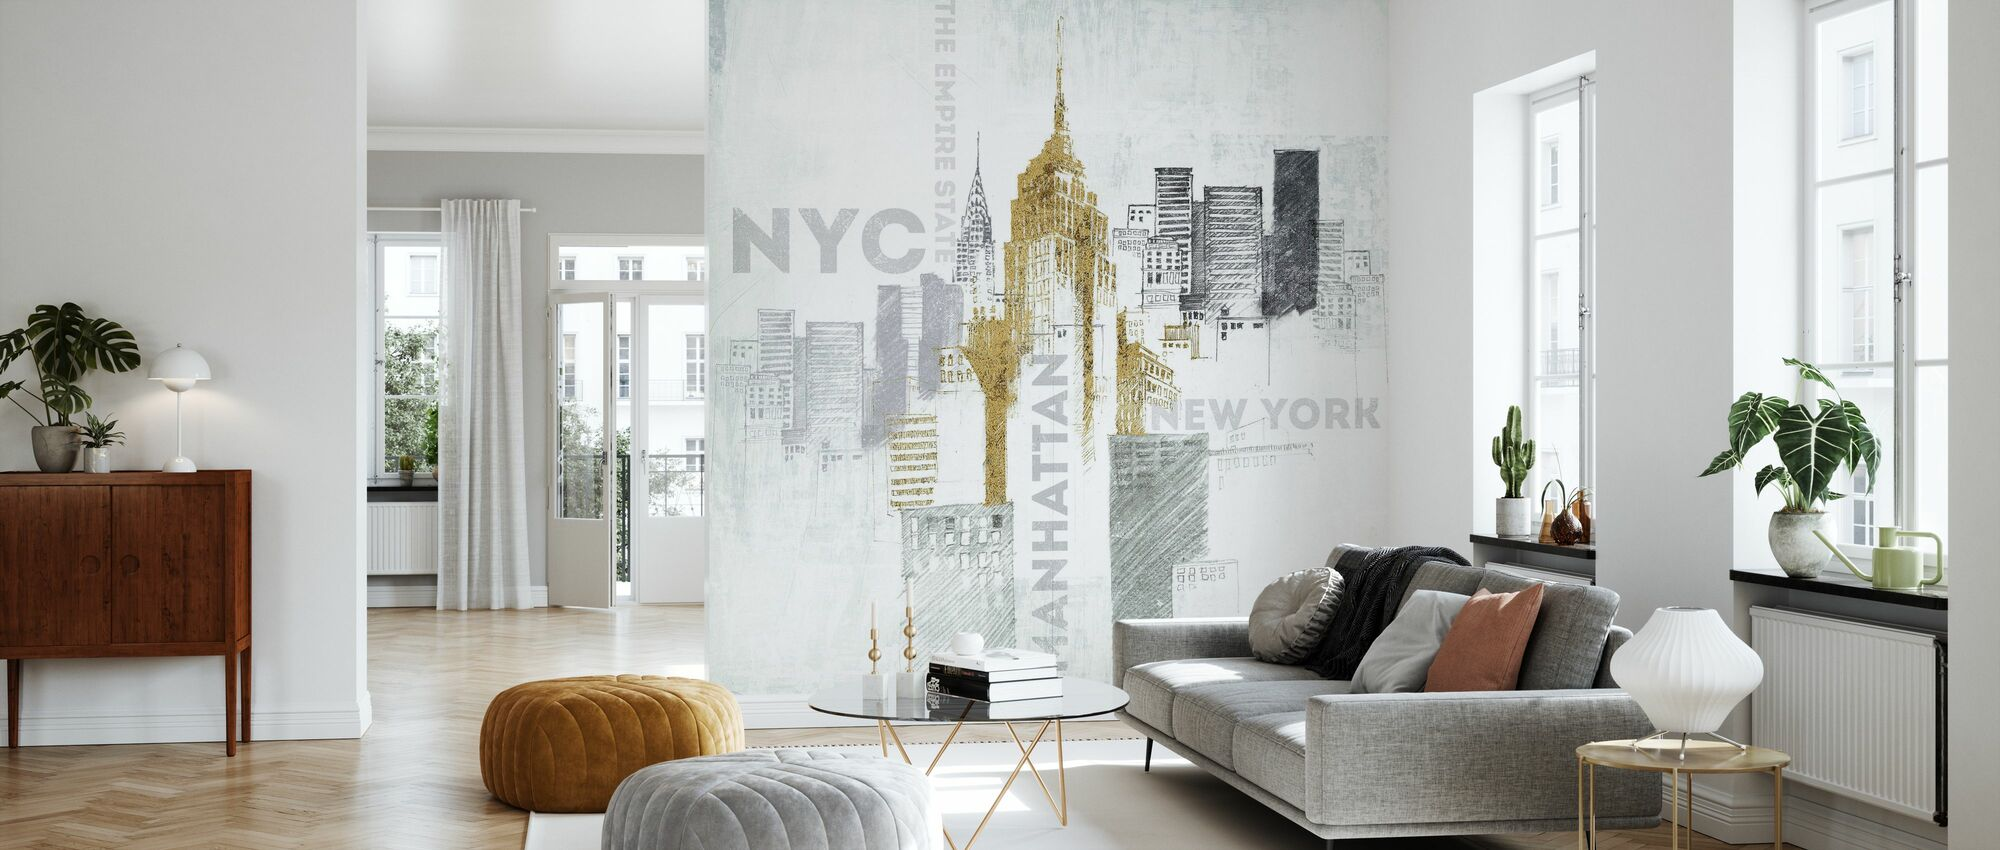 Empire State Building - Wallpaper - Living Room